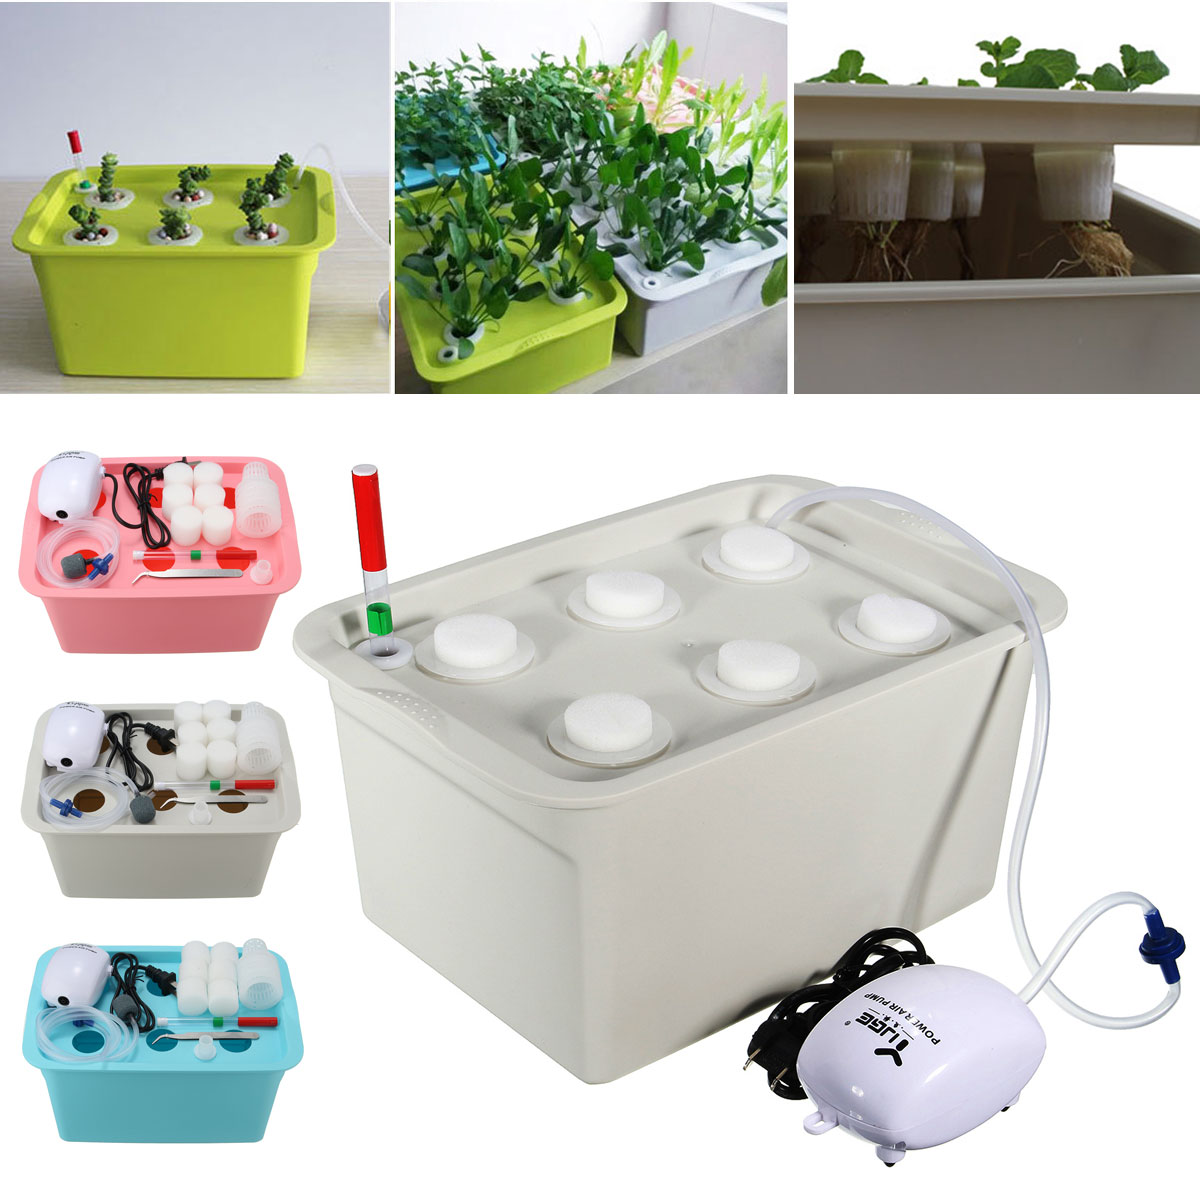 1 sets 220V/110V Plant Site Hydroponic Systems Kit 6 Holes Nursery Pots Soilless Cultivation Box Plant Seedling Grow Box Kit